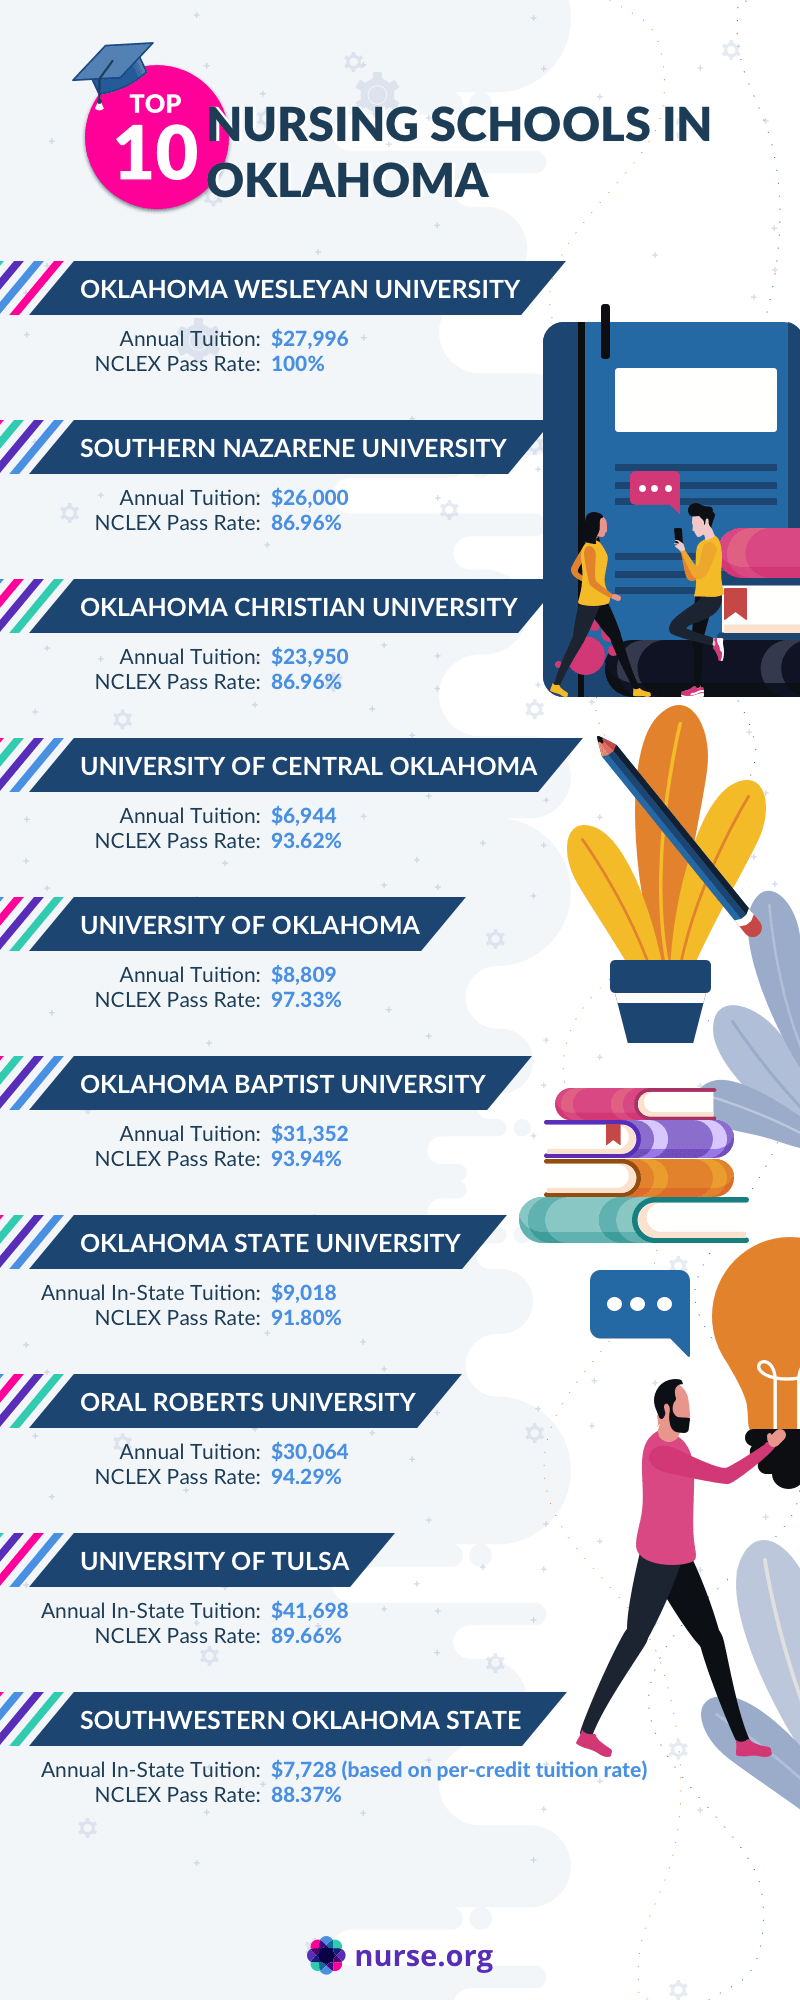 Infographic listing the top nursing schools in Oklahoma